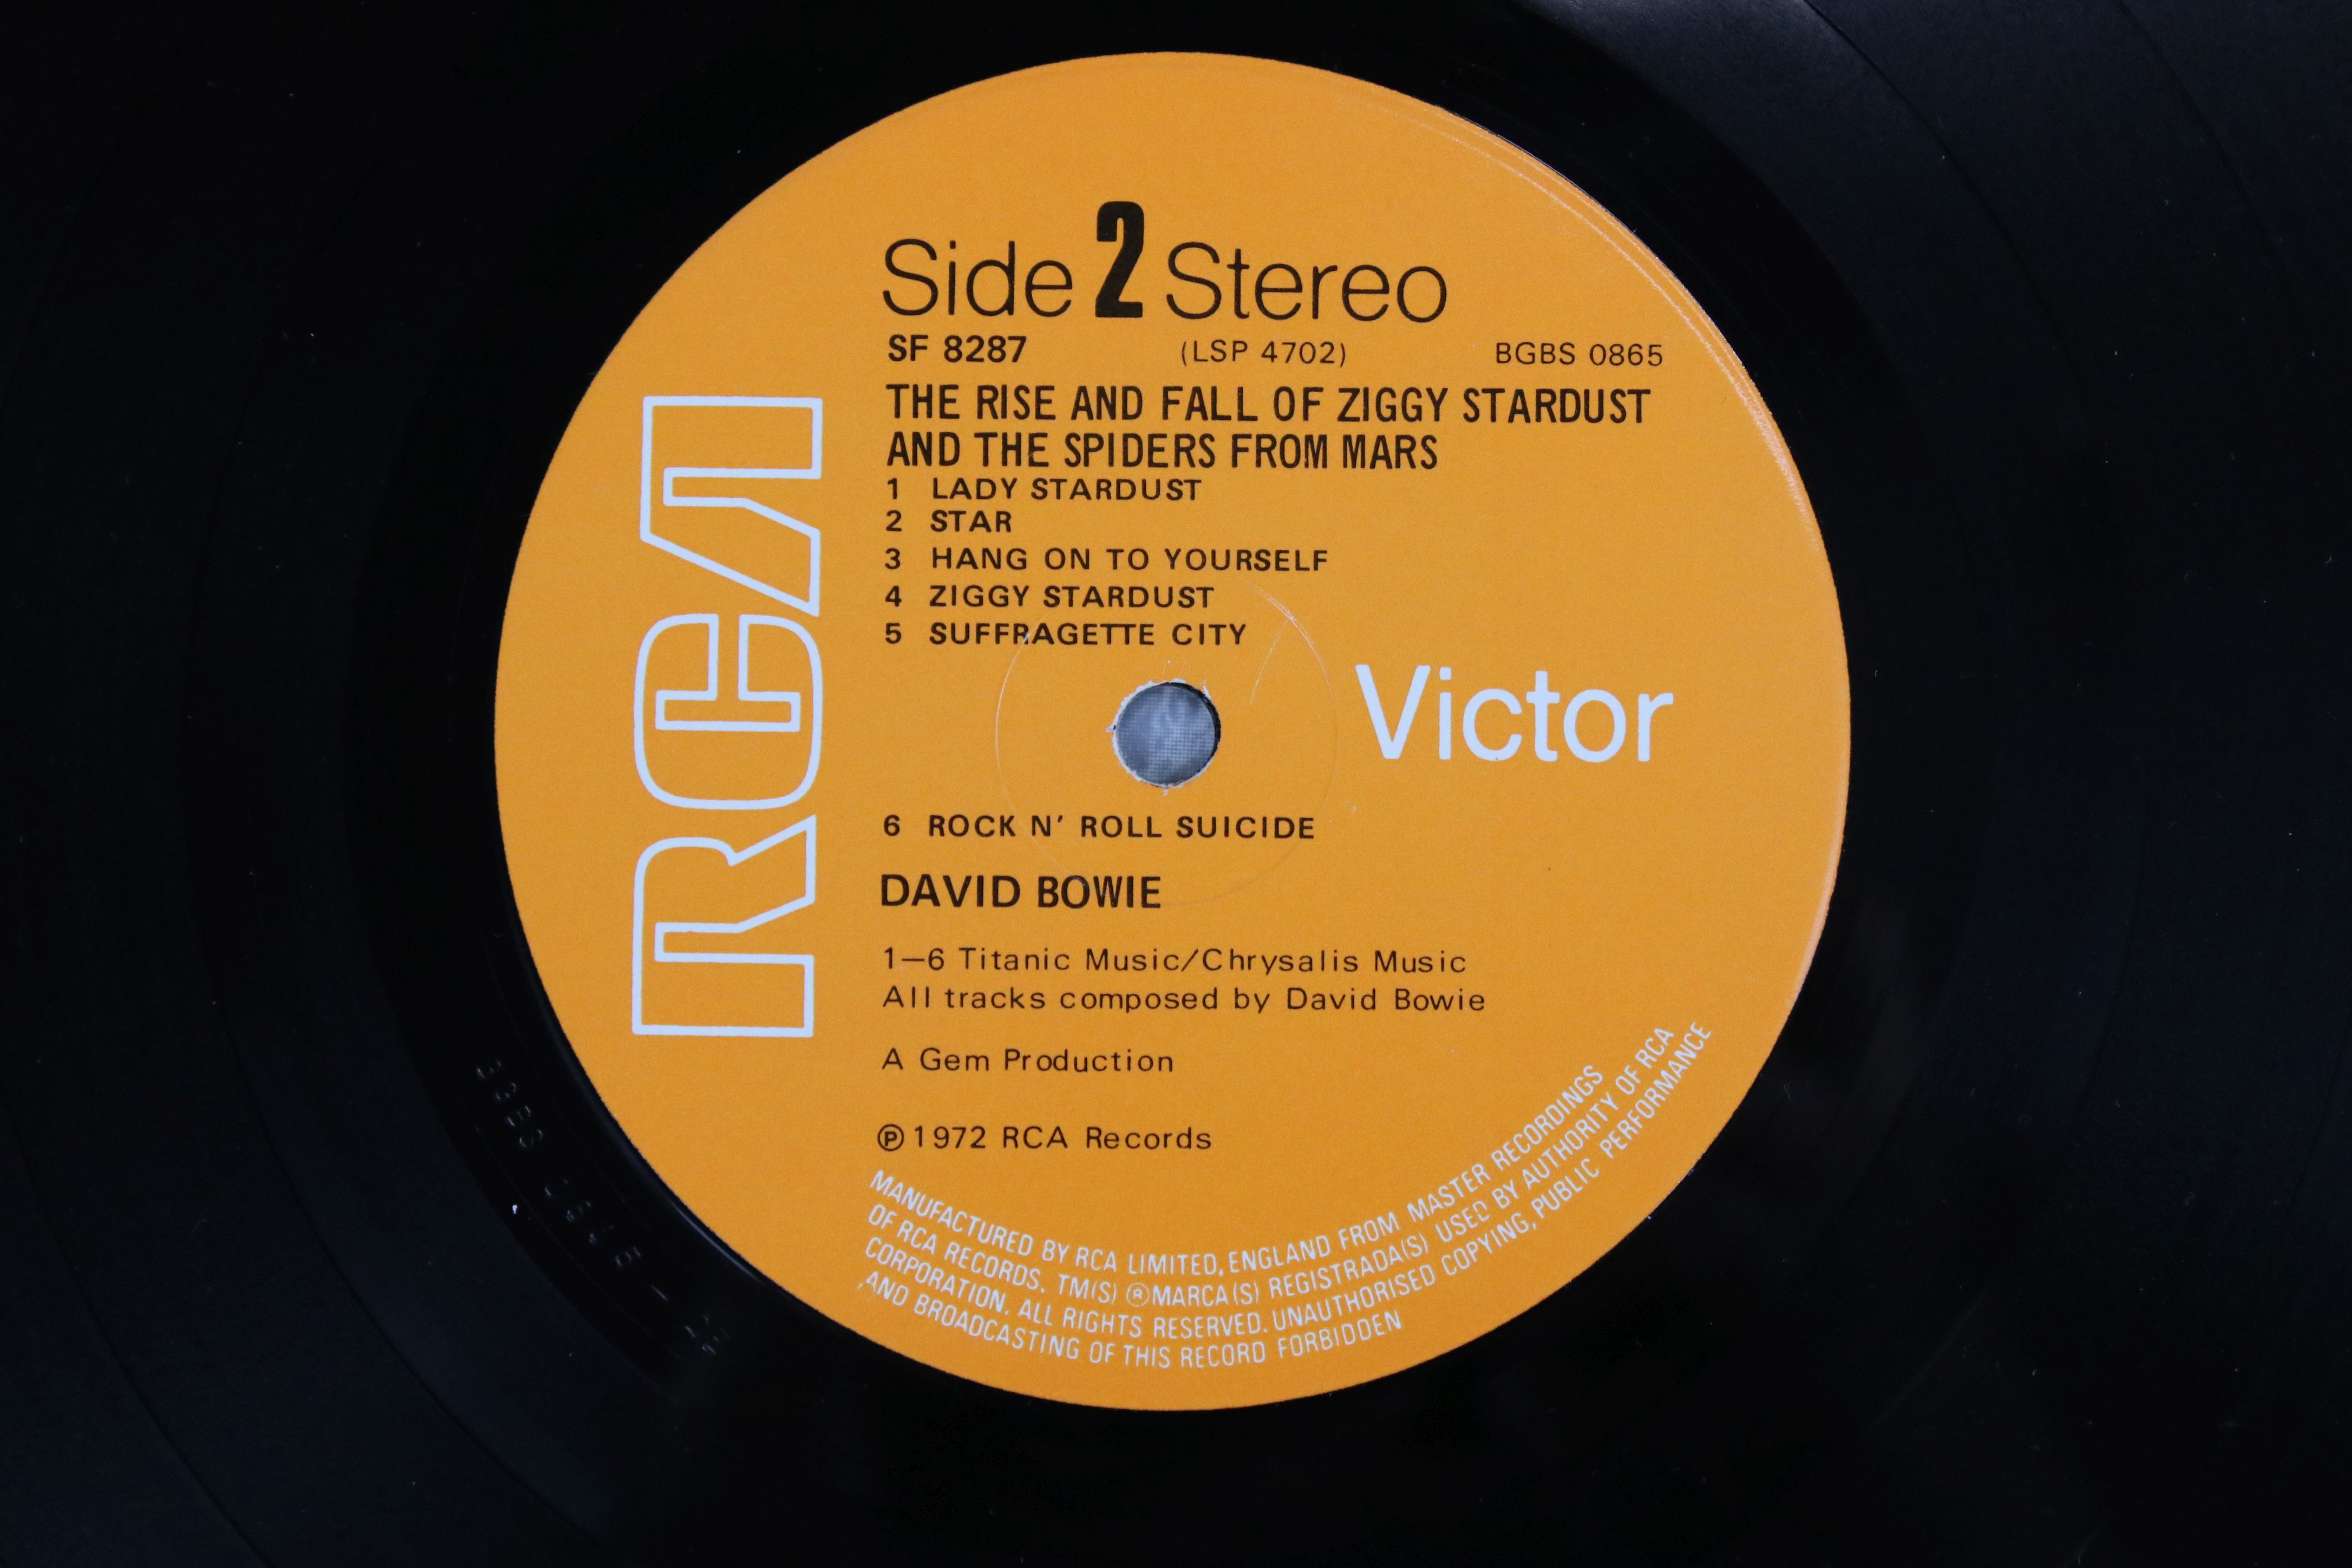 Vinyl - David Bowie The Rise and Fall of Ziggy Stardust LP on RCA8287, shiny orange RCA label, - Image 3 of 7